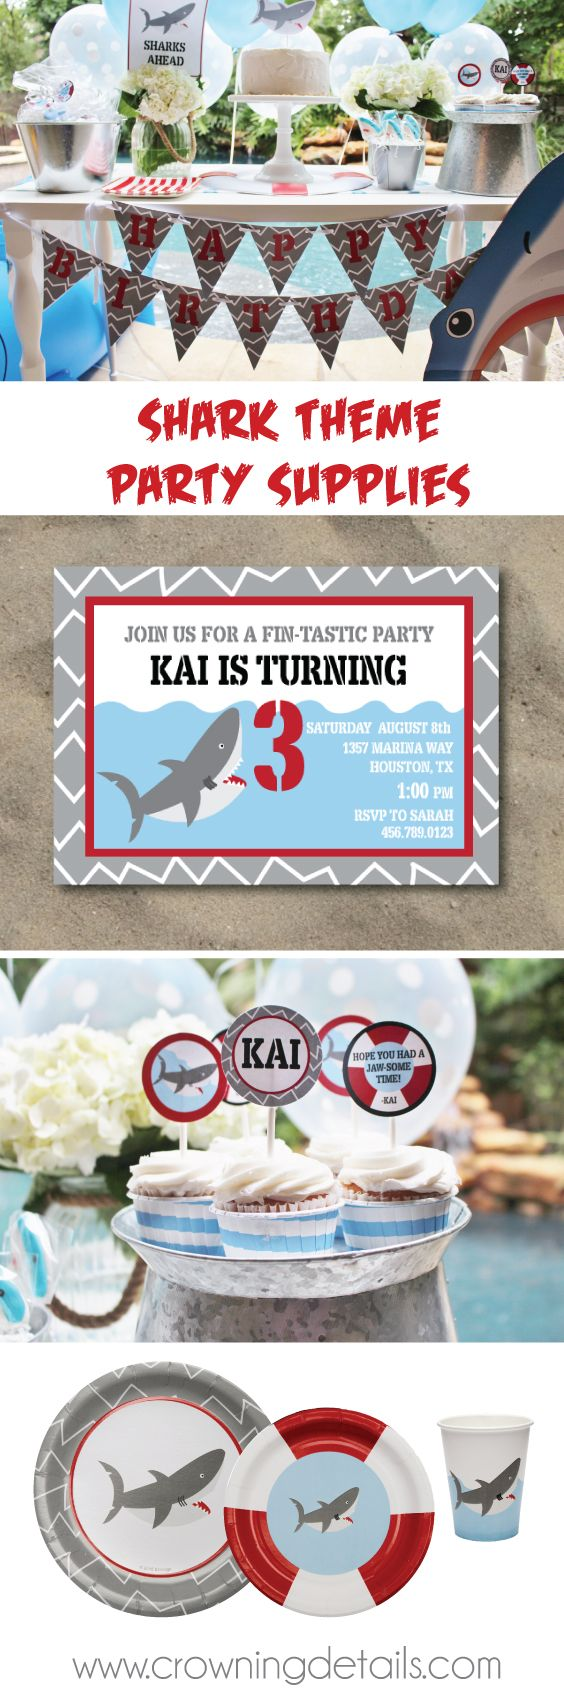 Shark party supplies for a fin-tastic birthday party! Shop the collection in our online store.  shark paper plates